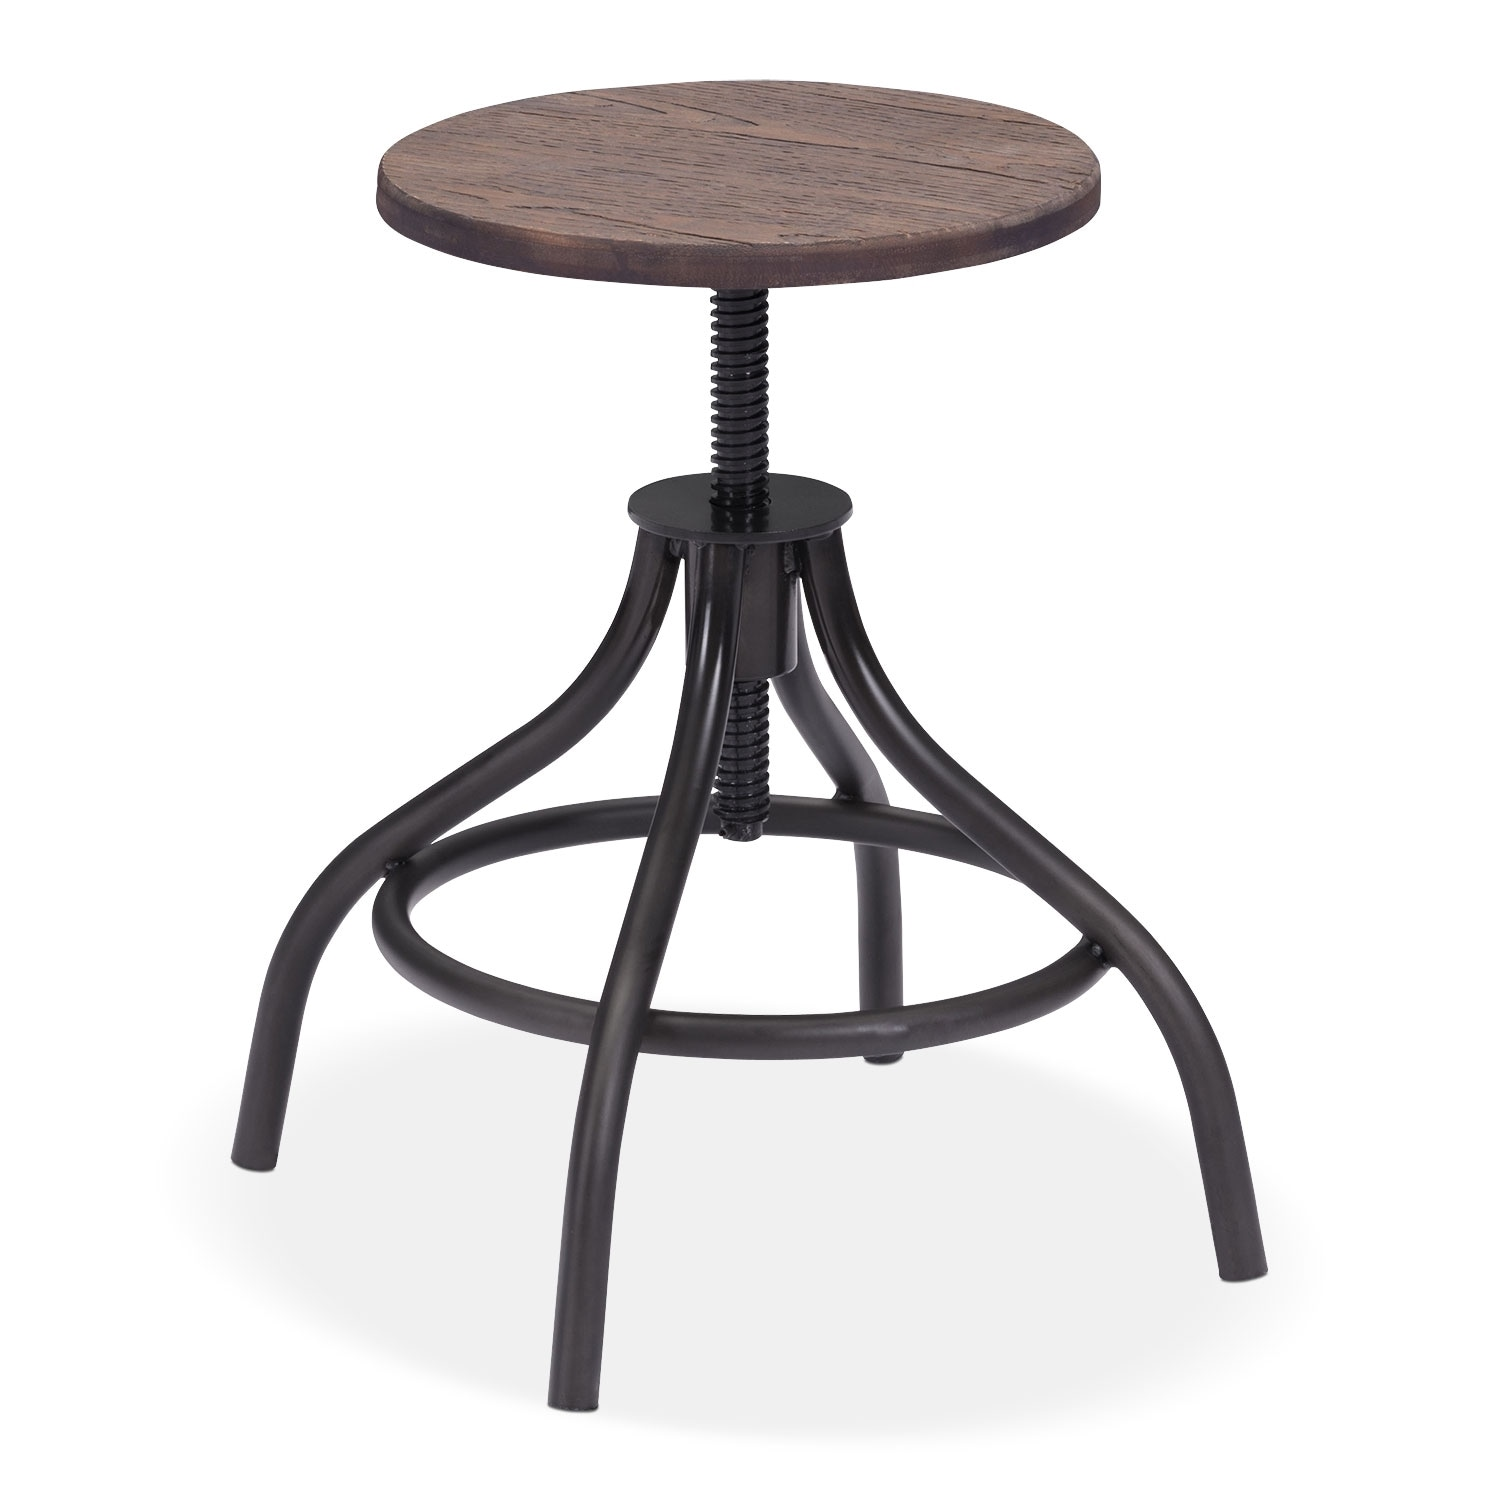 Turner Adjustable Stool - Black